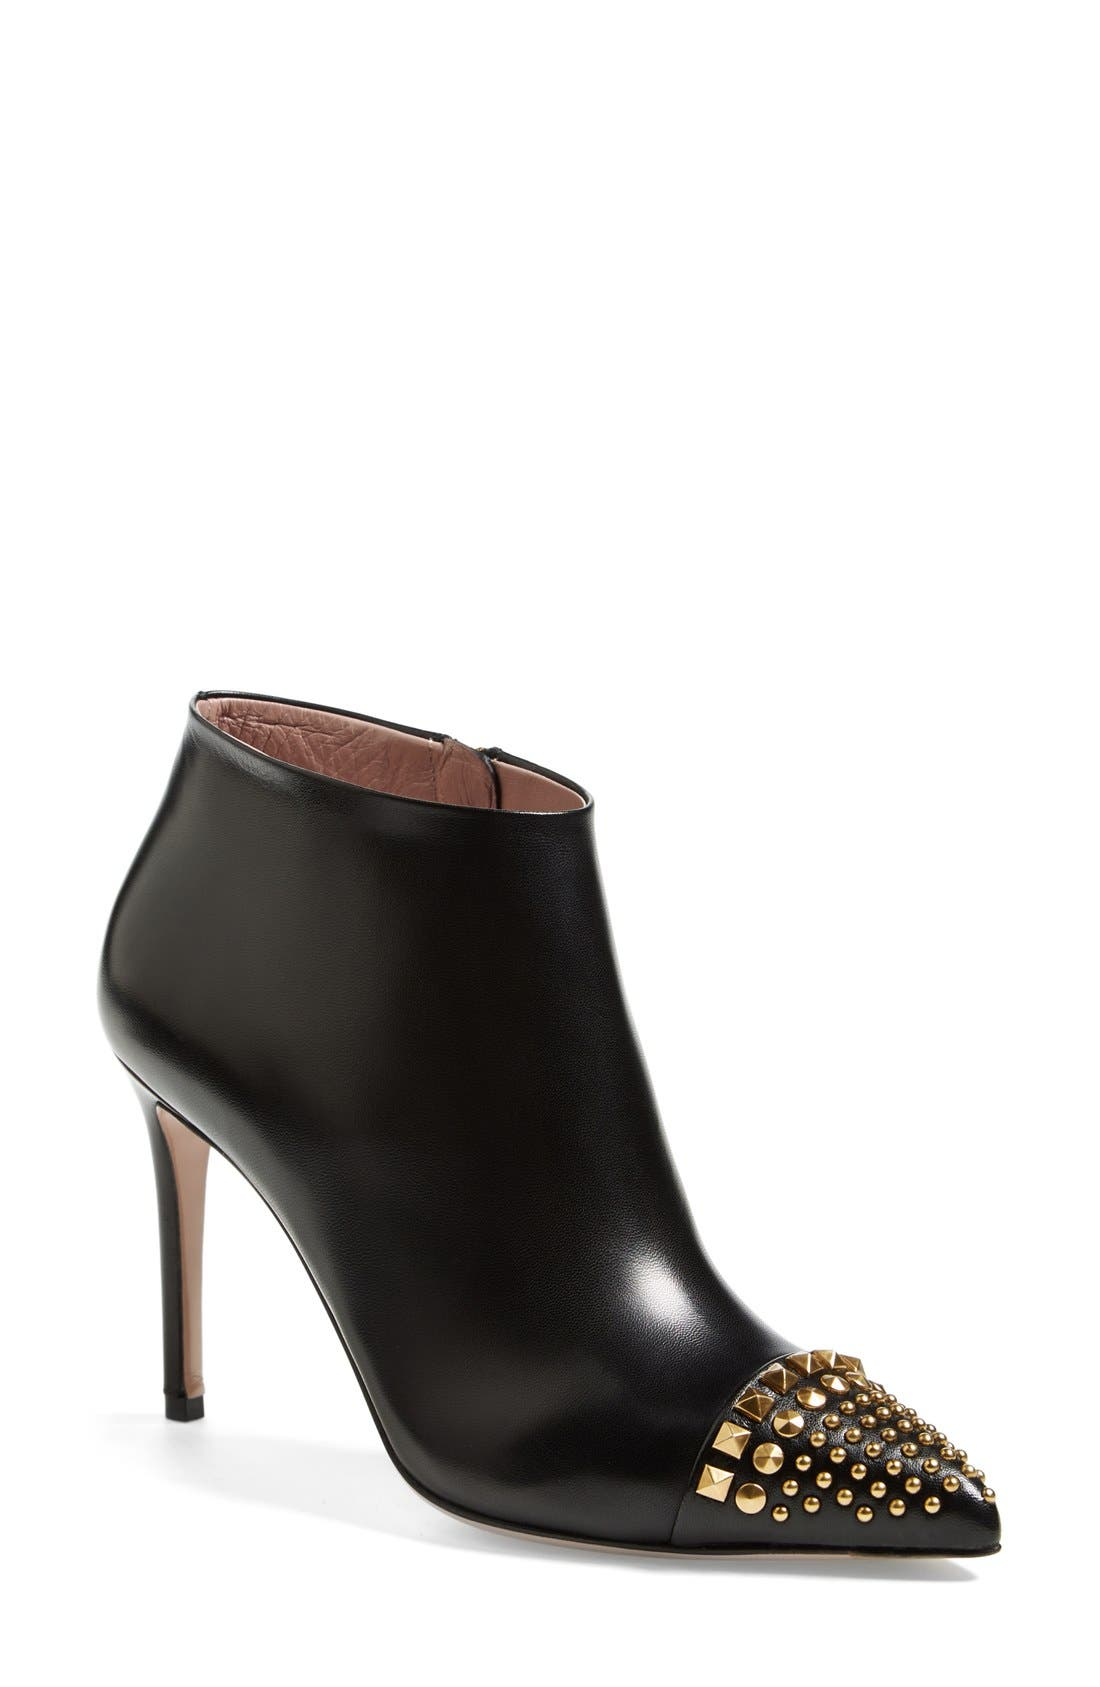 Alternate Image 1 Selected - Gucci 'Coline' Studded Cap Toe Bootie (Women)